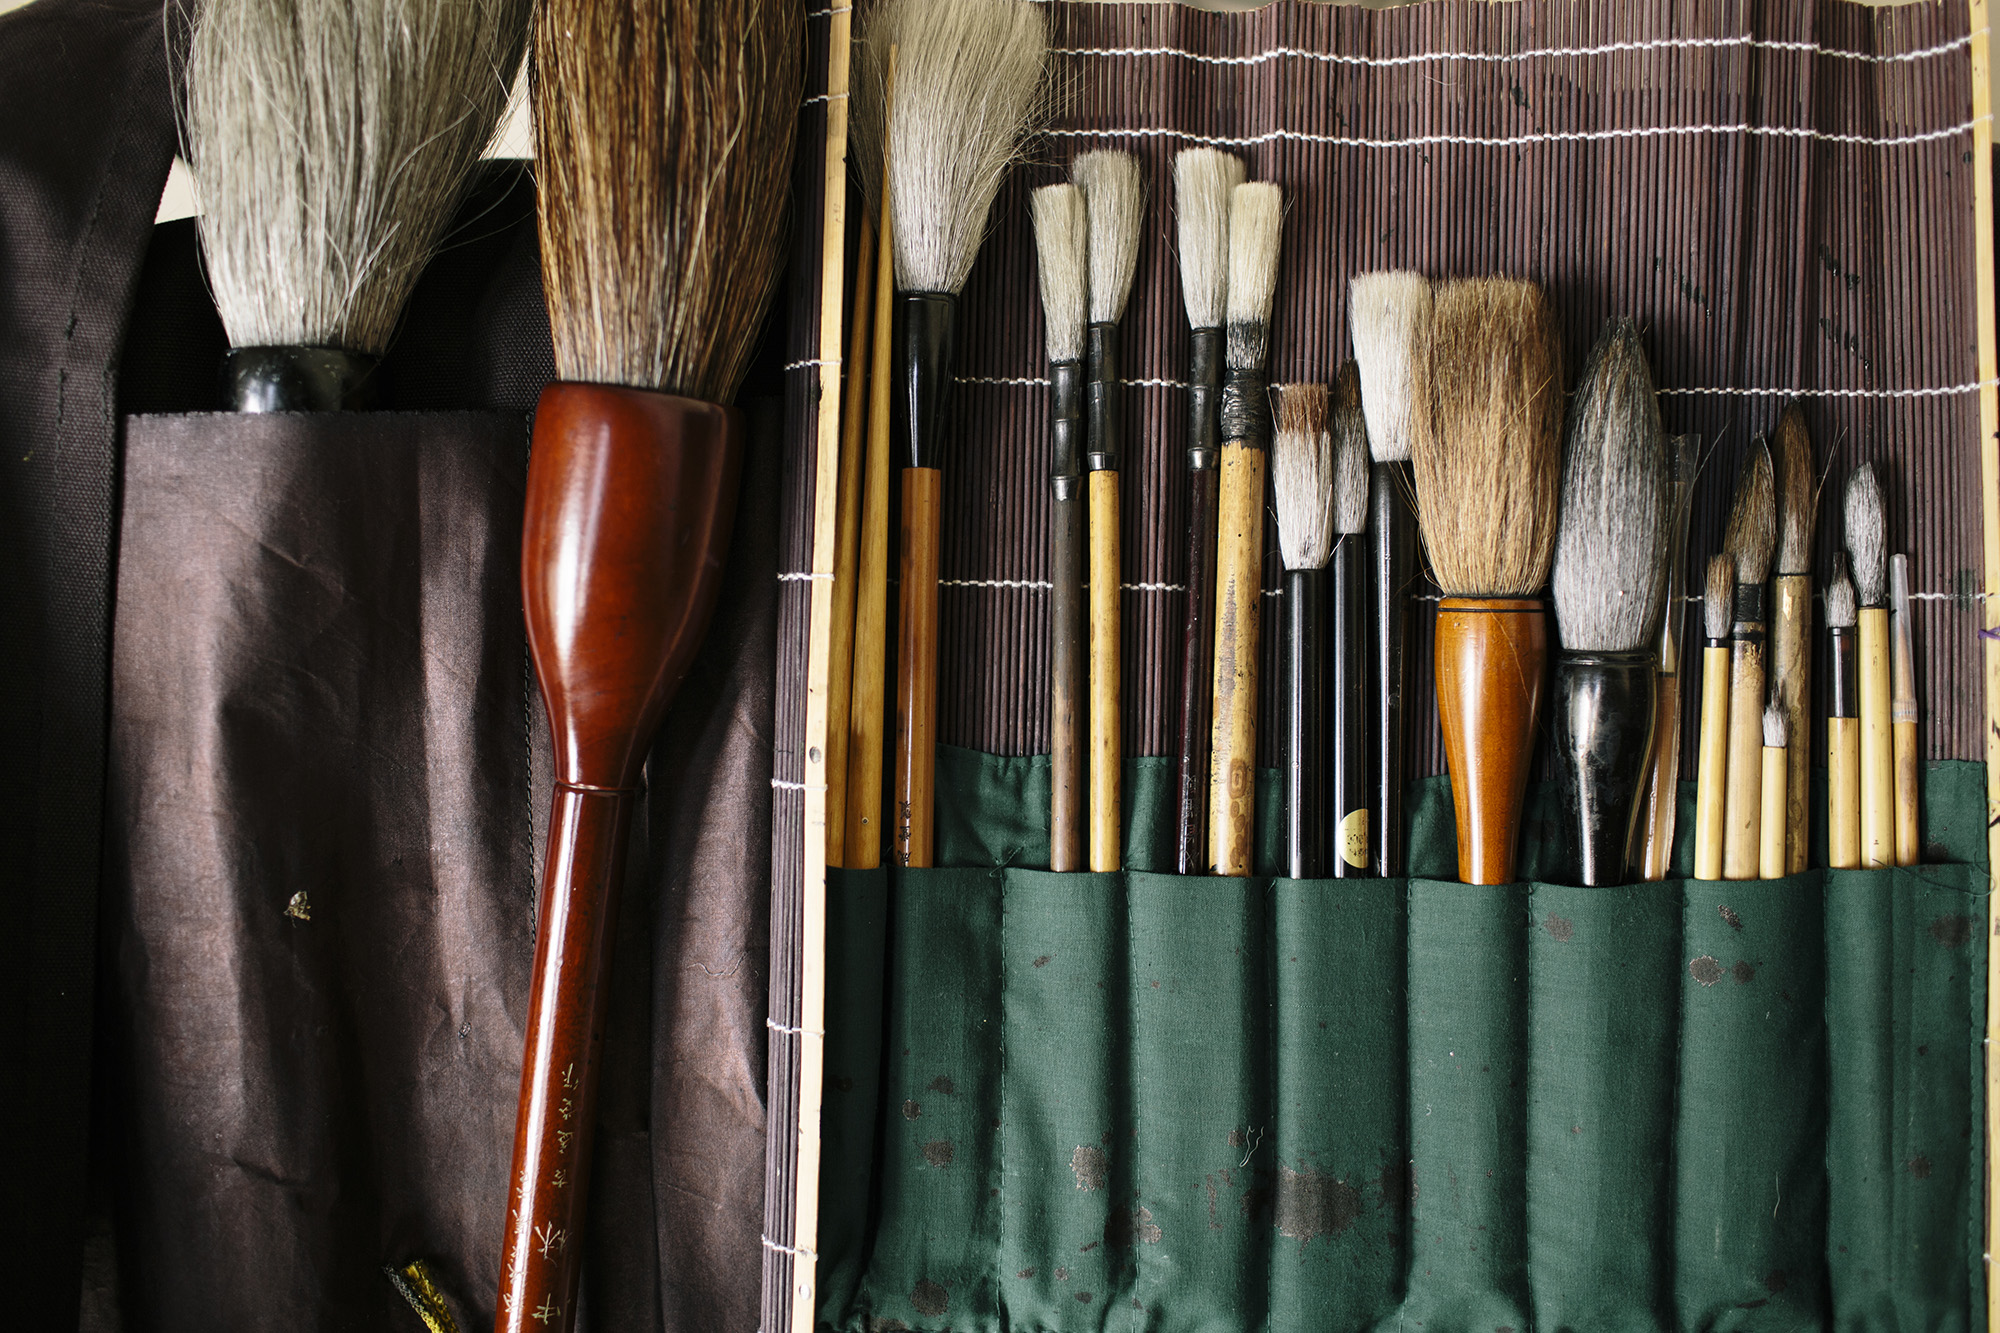 Aoi's calligraphy brushes _ photo by Corey Fuller